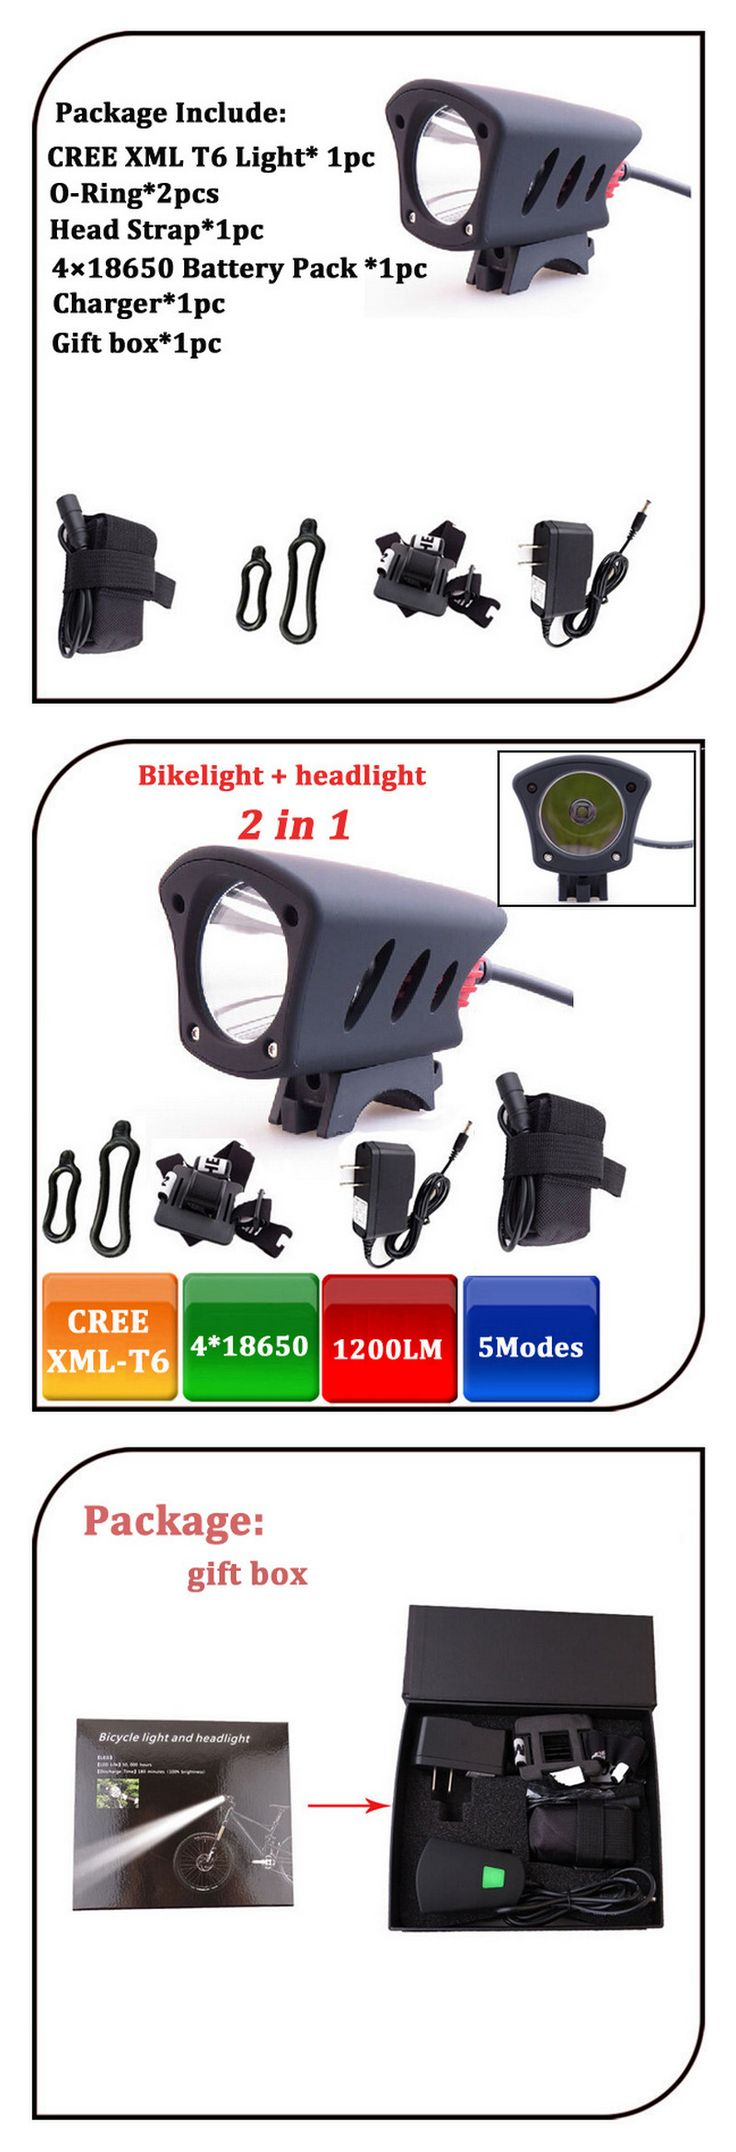 1,  Bulb: 1* CREE XML-T6 LED Bike light  2,  Lamp Shell Material :Aluminum alloy+ABS  3,  Waterproof design  4,  5 Working Modes: High-Mid-Low-Strobe-Flash  5. 1200lumen for high mode. with 6600mah battery pack.  Runtime: 3-4hours for high mode  6. Suit for  Travel,Climbing,Camping,Prospecting, hunting,etc